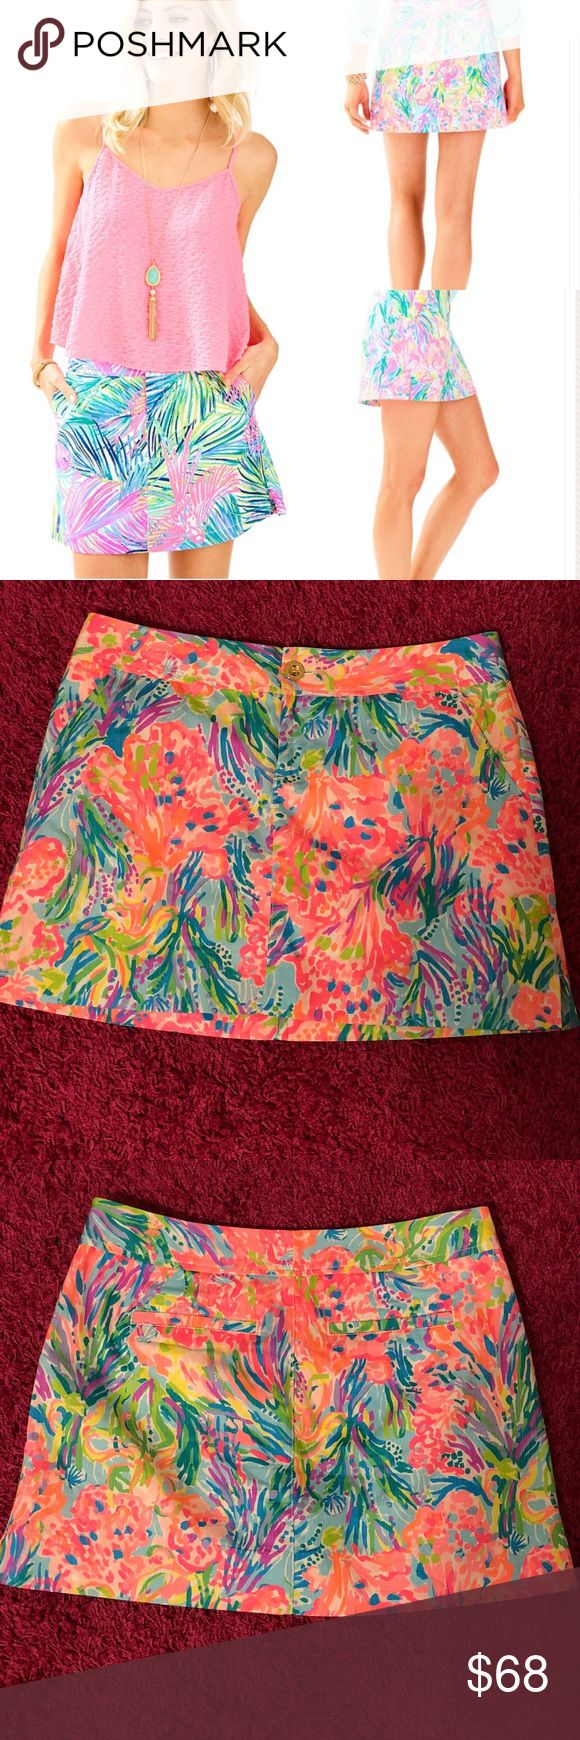 """Lilly Pulitzer Nike Skort 💕 The Nicki Skort gives you the look of a skirt and the freedom of shorts. This printed zip fly skort has a center front button closure, slant front pockets, and back welt pockets.   Zip Fly Skort With Center Front Button Closure, Slant Front Pockets, And Back Welt Pockets. 17"""" From Natural Waist To Hem. Vintage Dobby - Printed (100% Cotton).won once , like new ! NO TRADES ✅ Lilly Pulitzer Shorts Skorts"""